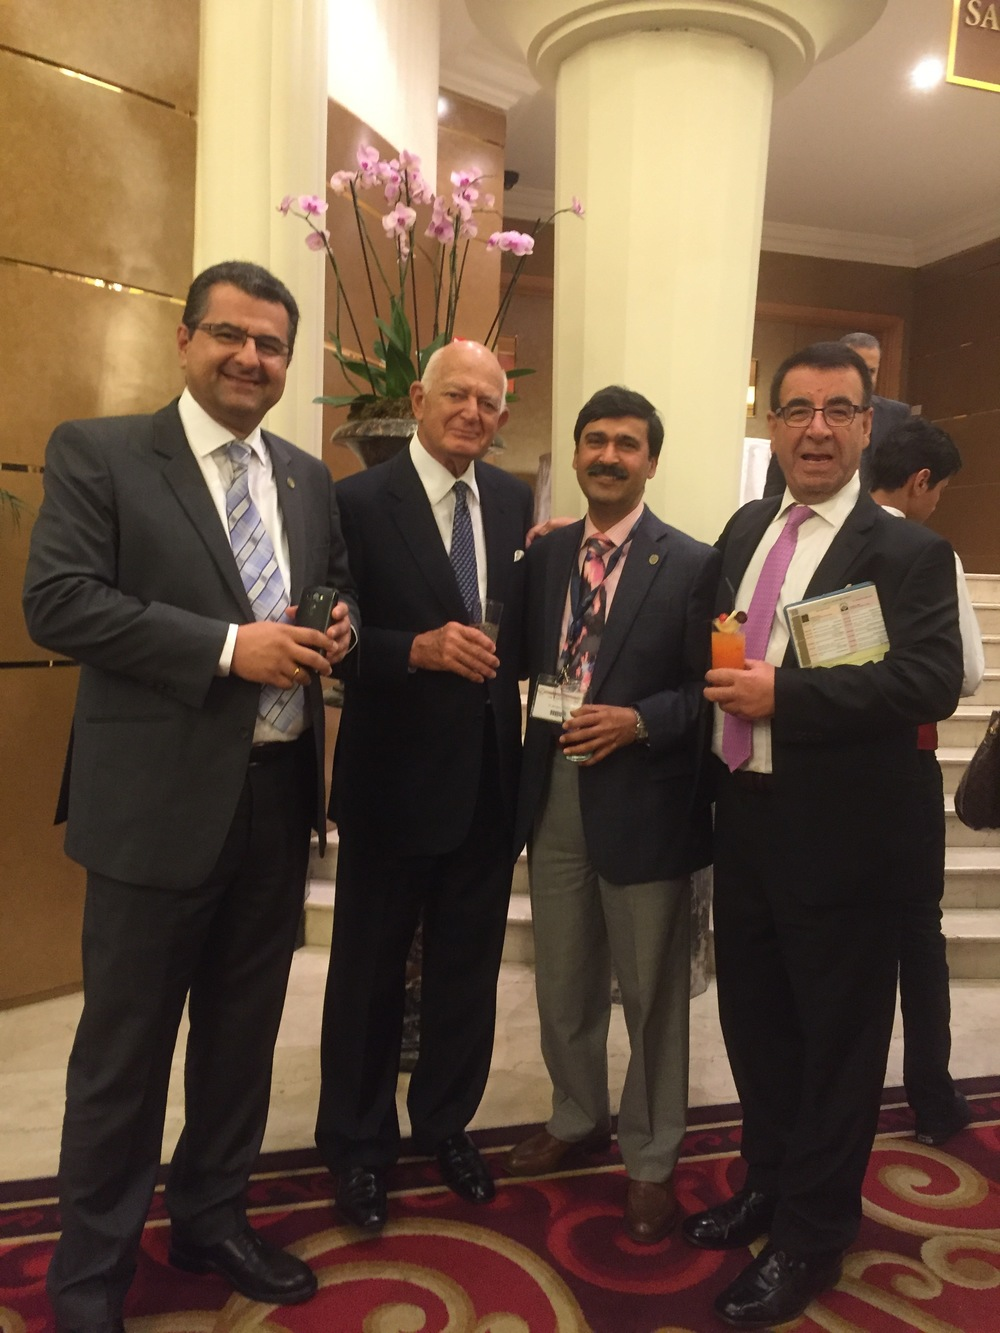 With Dr Sam Hamra (USA) and Mr Bassim Matti (UK)